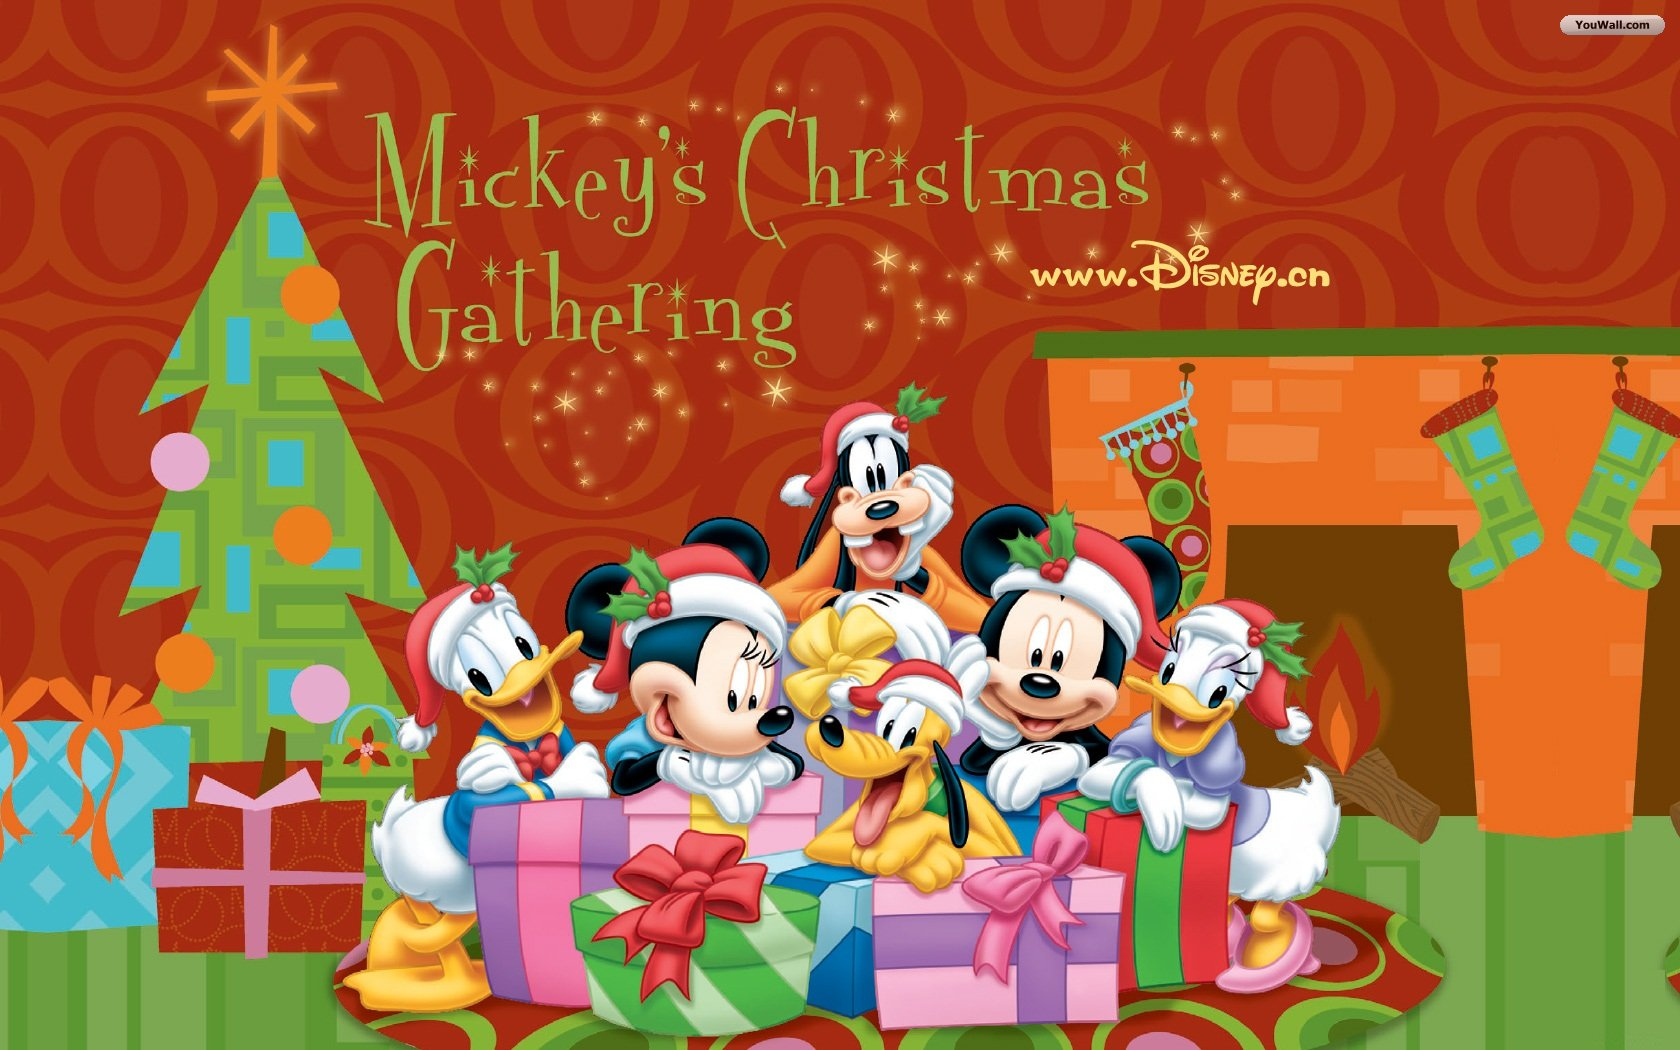 disney mickey mouse with santa claus christmas wallpaper 1680x1050 - Merry Christmas Mickey Mouse